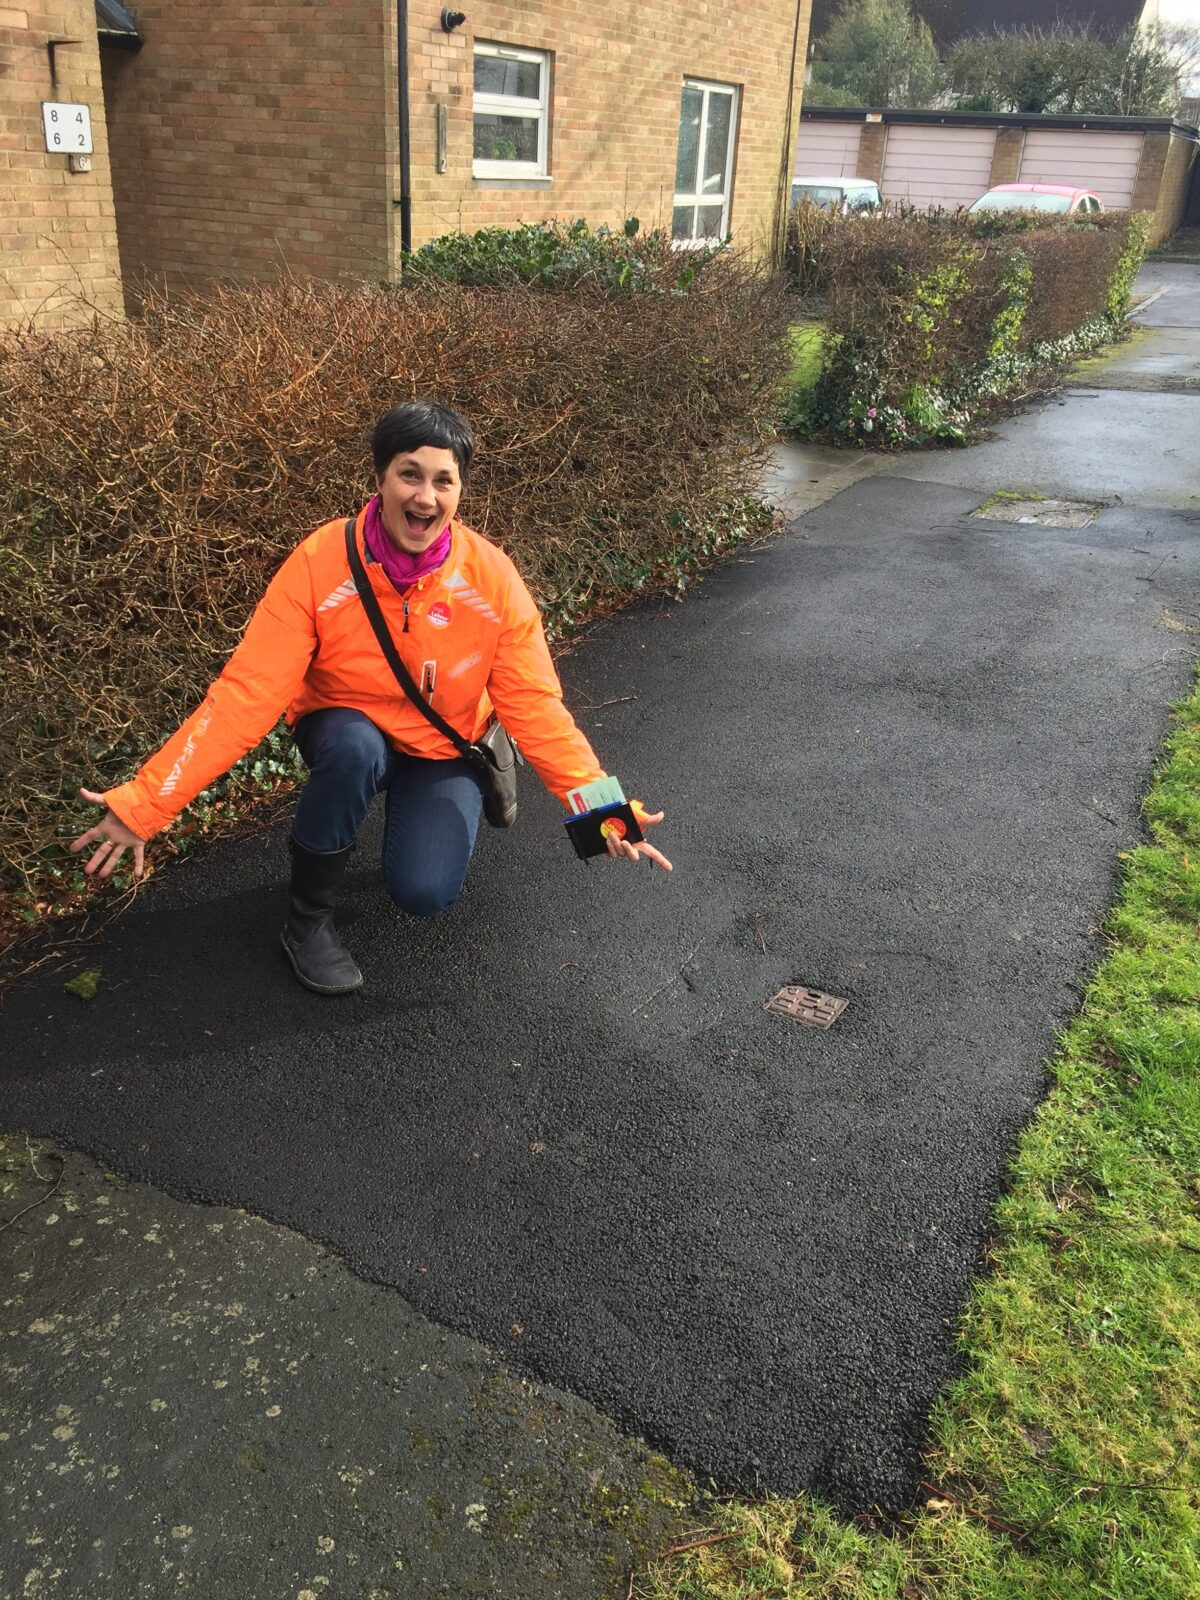 Let's get our pavements sorted!